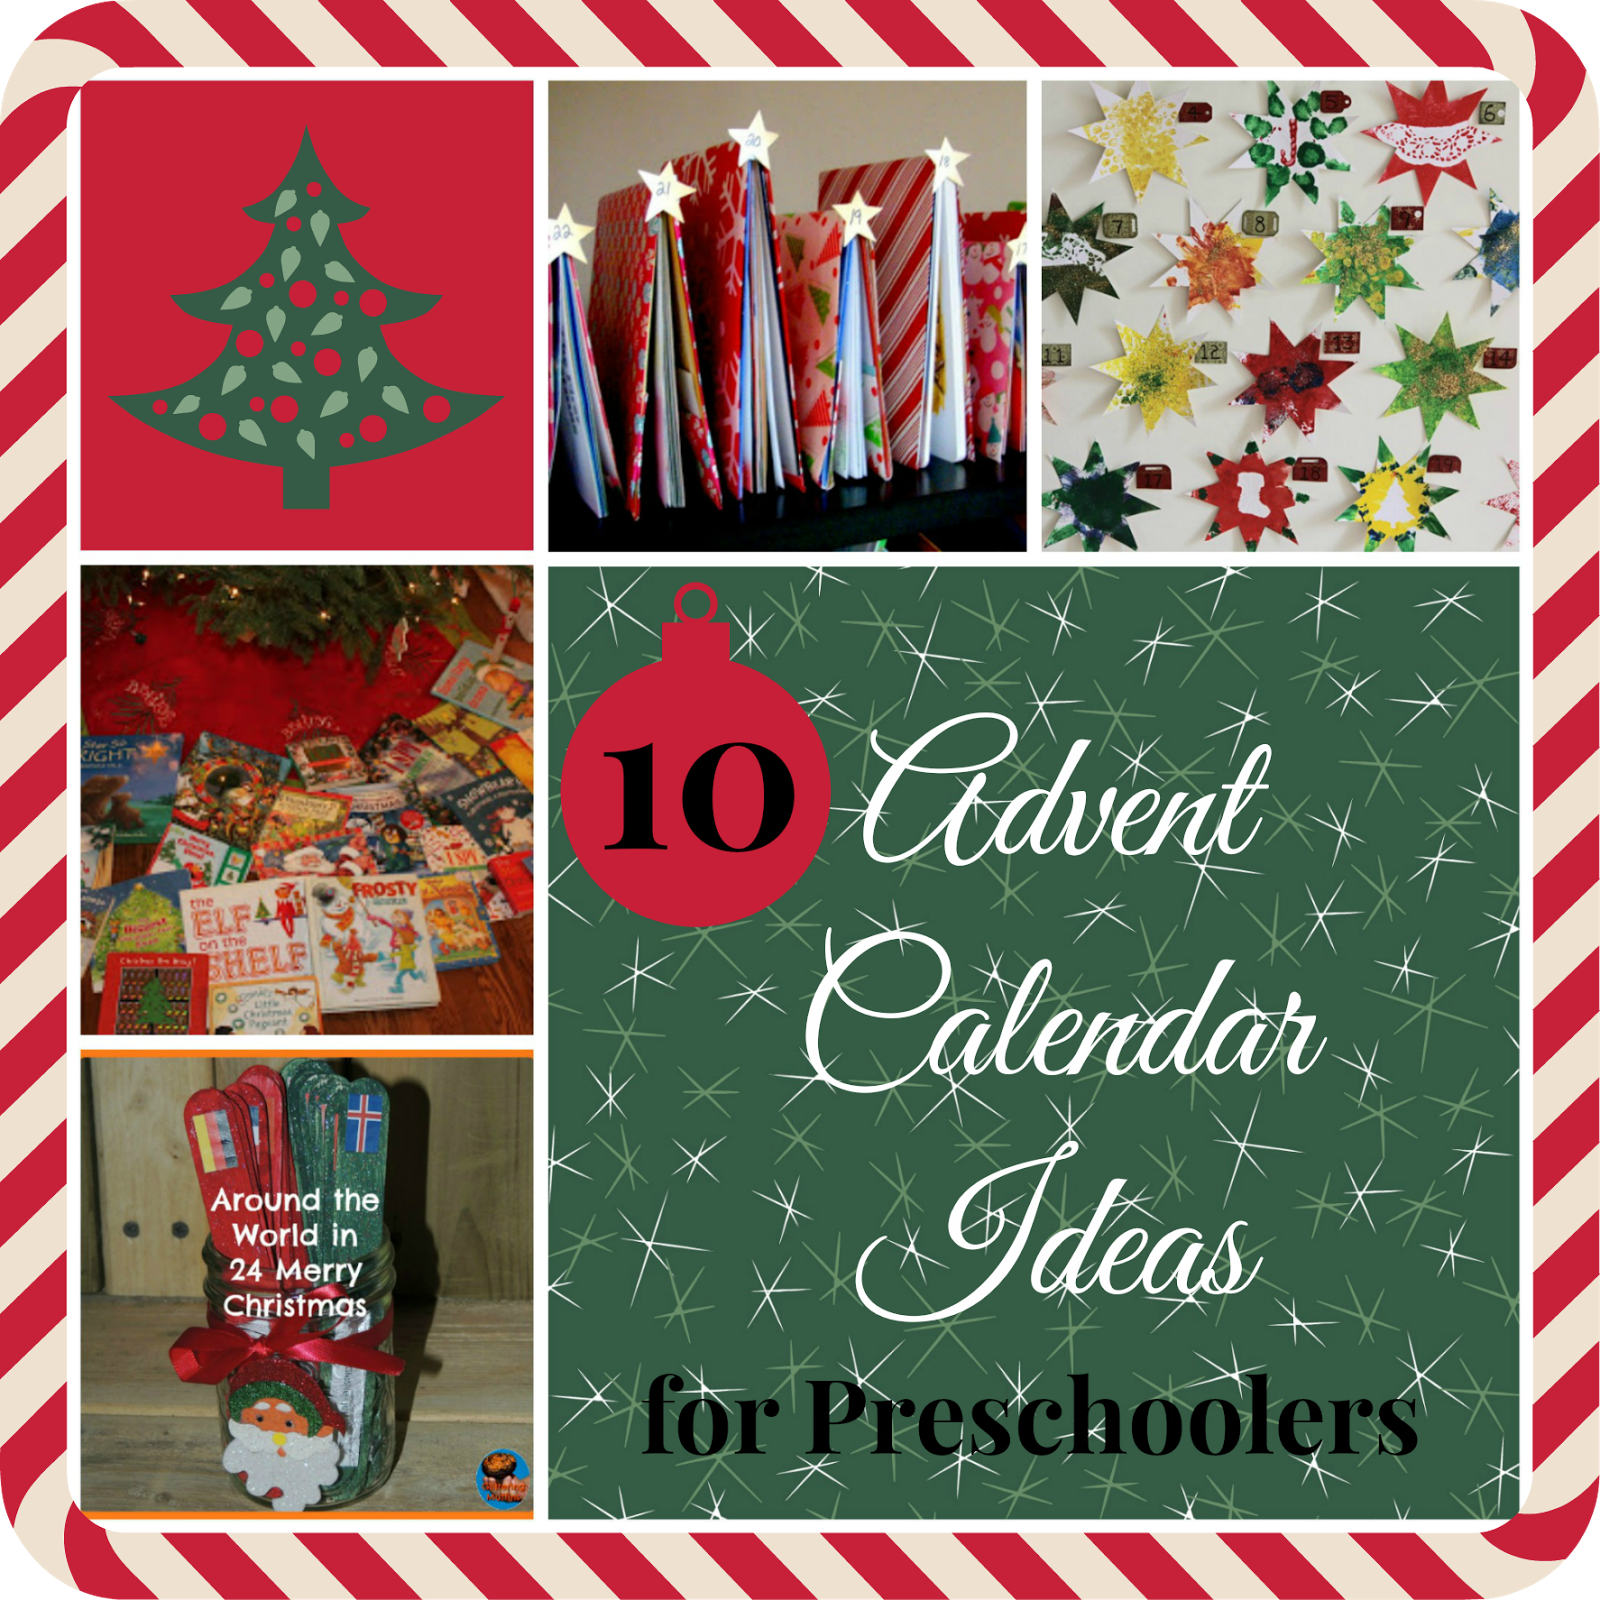 10 Christmas Advent Calendar Ideas For Preschoolers Christmas Advent Calendar Christmas Advent Kids Christmas